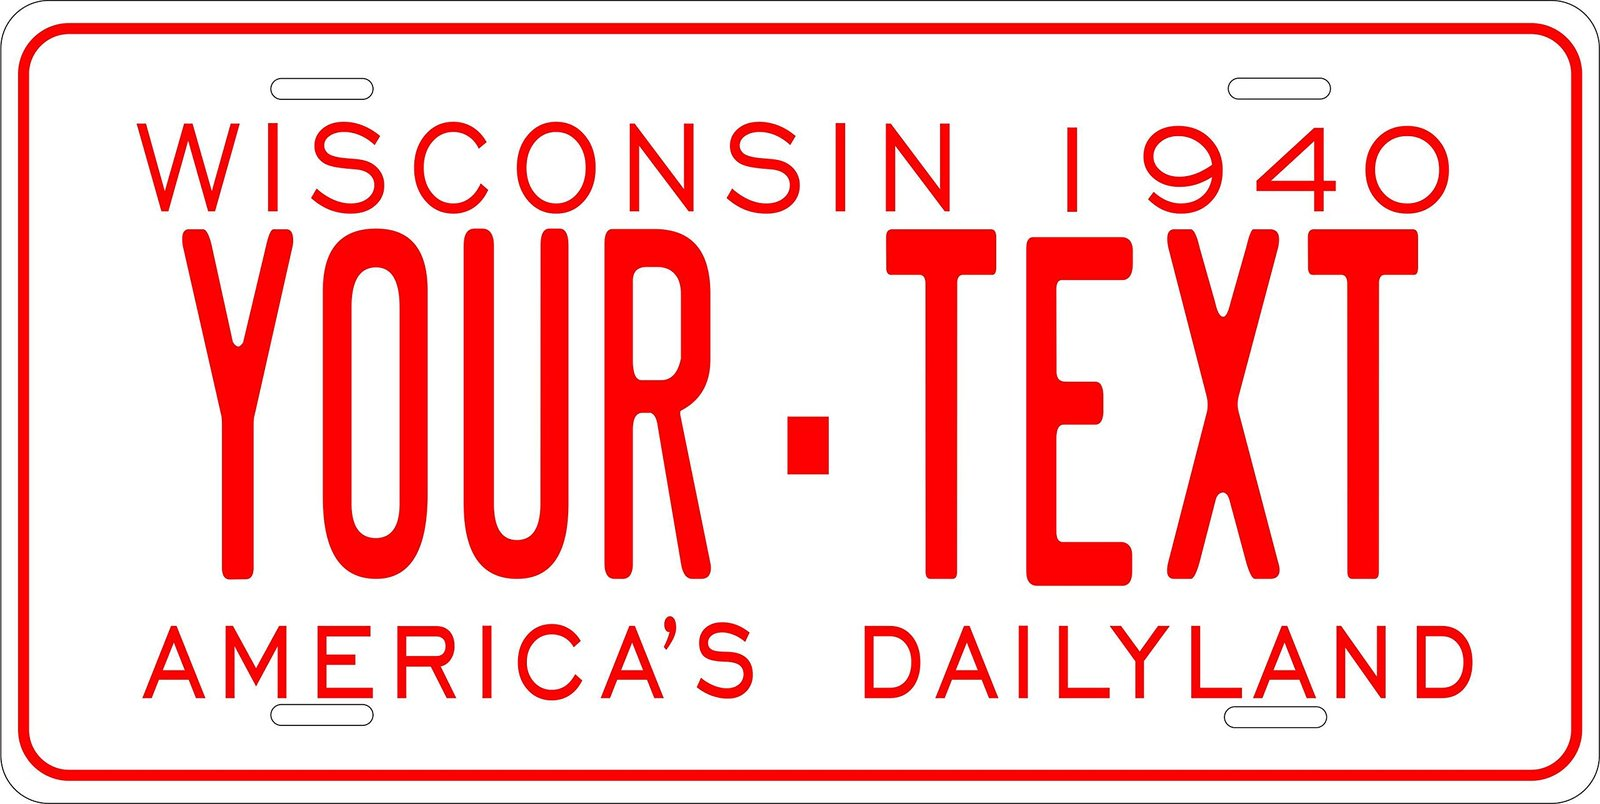 Wisconsin 1940 Personalized Custom Novelty Tag Vehicle Car Auto Motorcycle Mo...